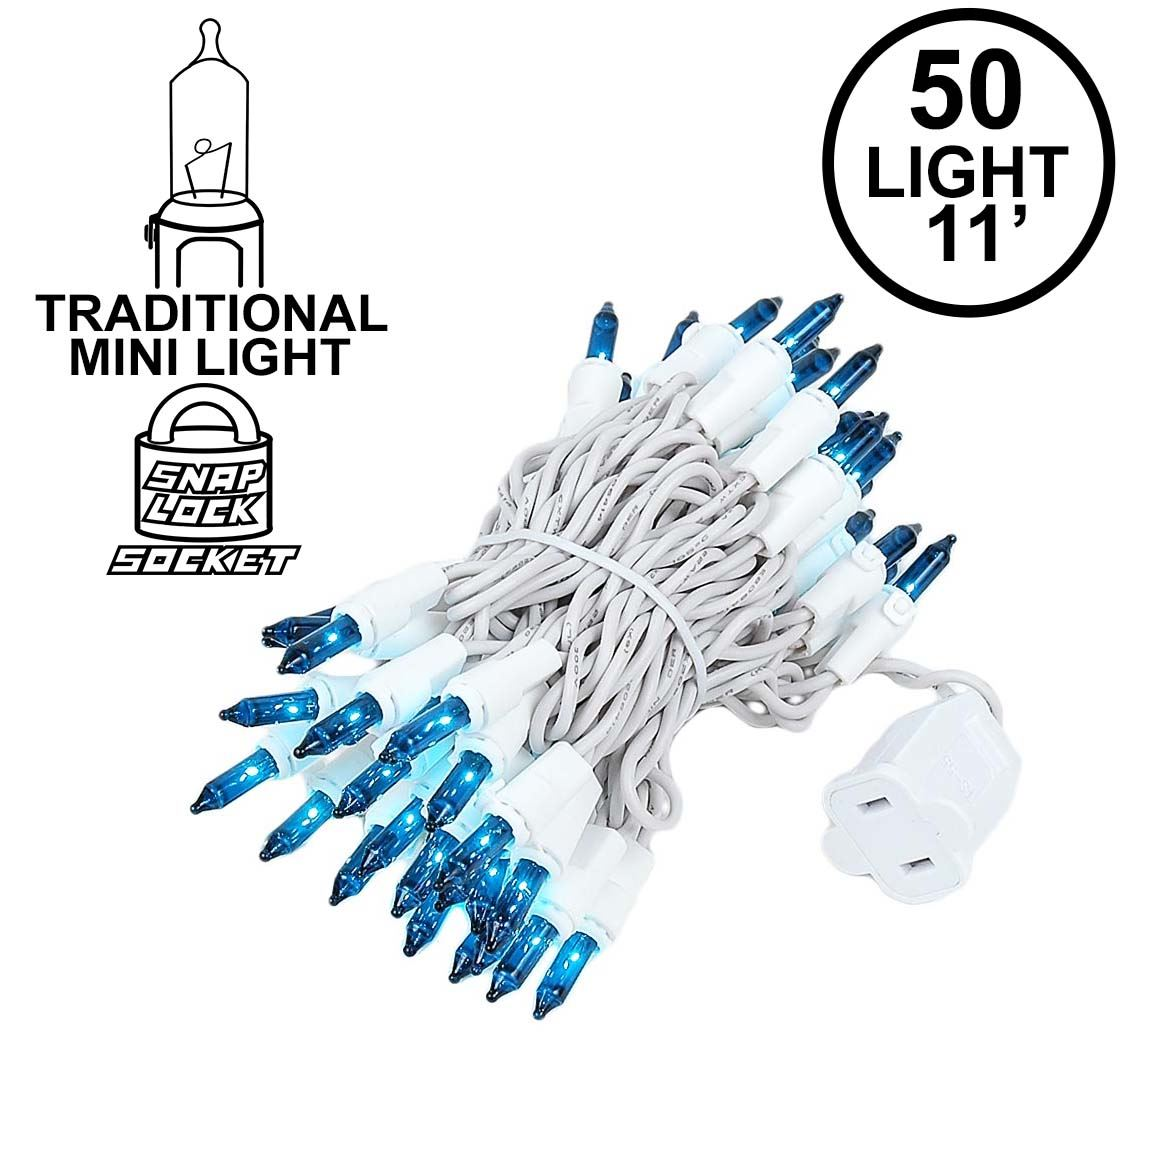 Picture of Teal 50 Light 11' Long White Wire Christmas Mini Lights